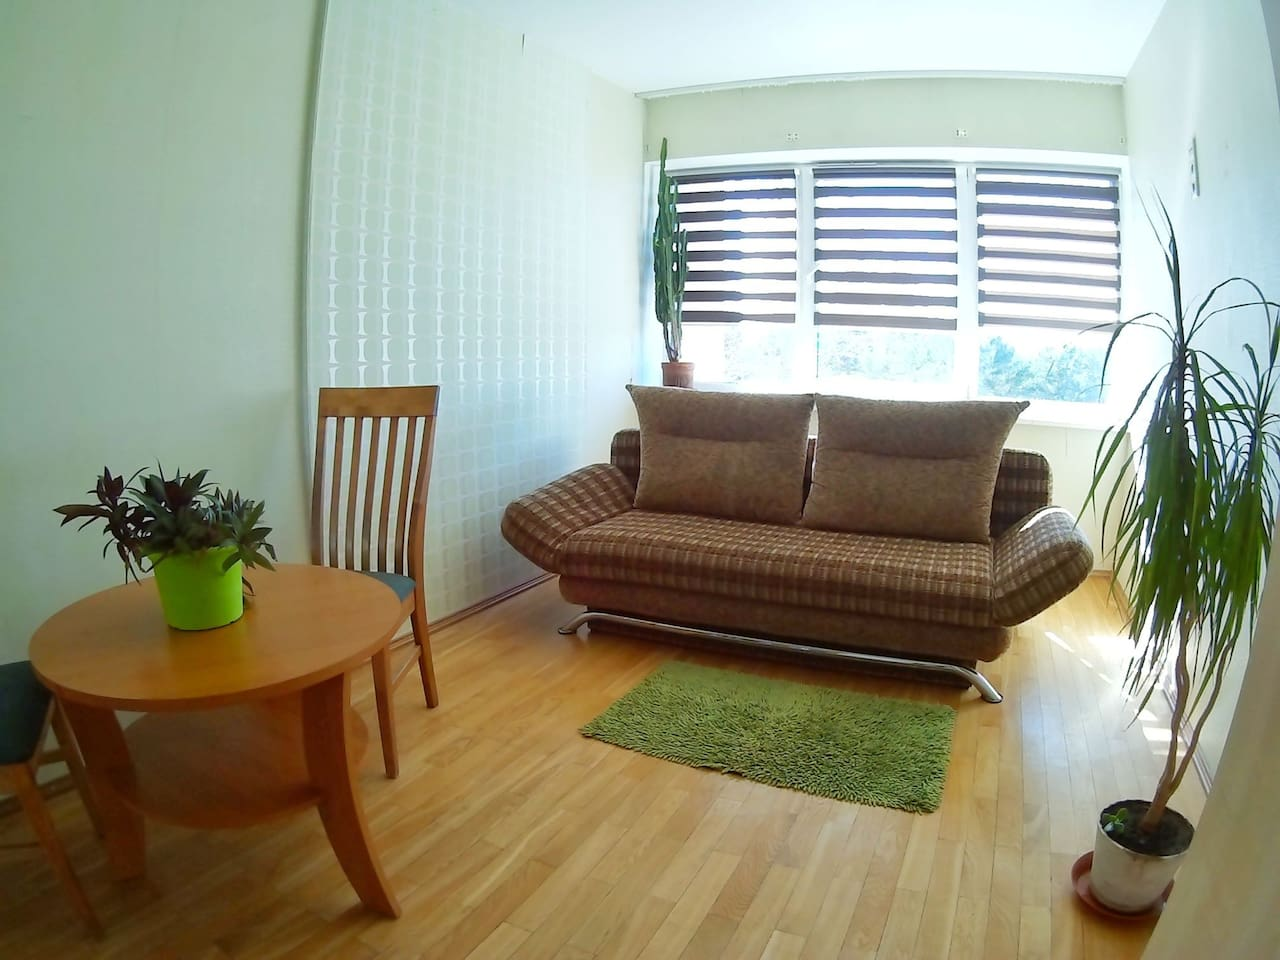 14 m2 room for 2 people